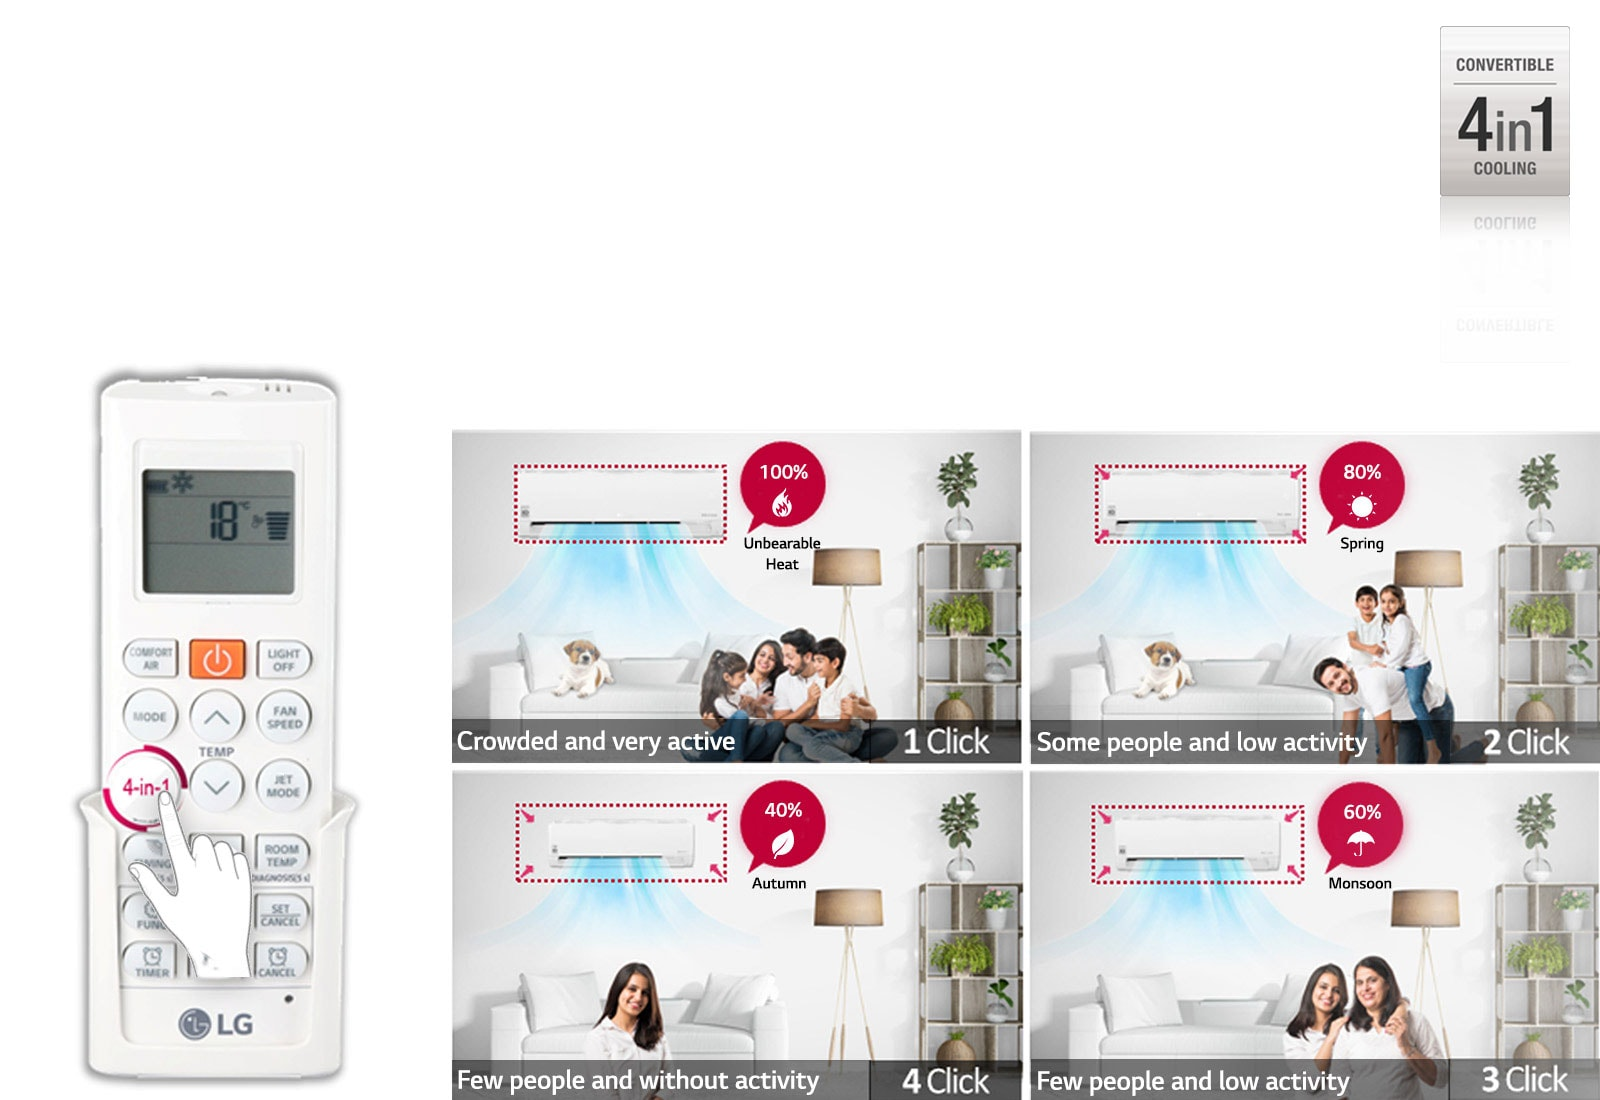 LG LS-Q18CNZD 4 in 1 convertible cooling